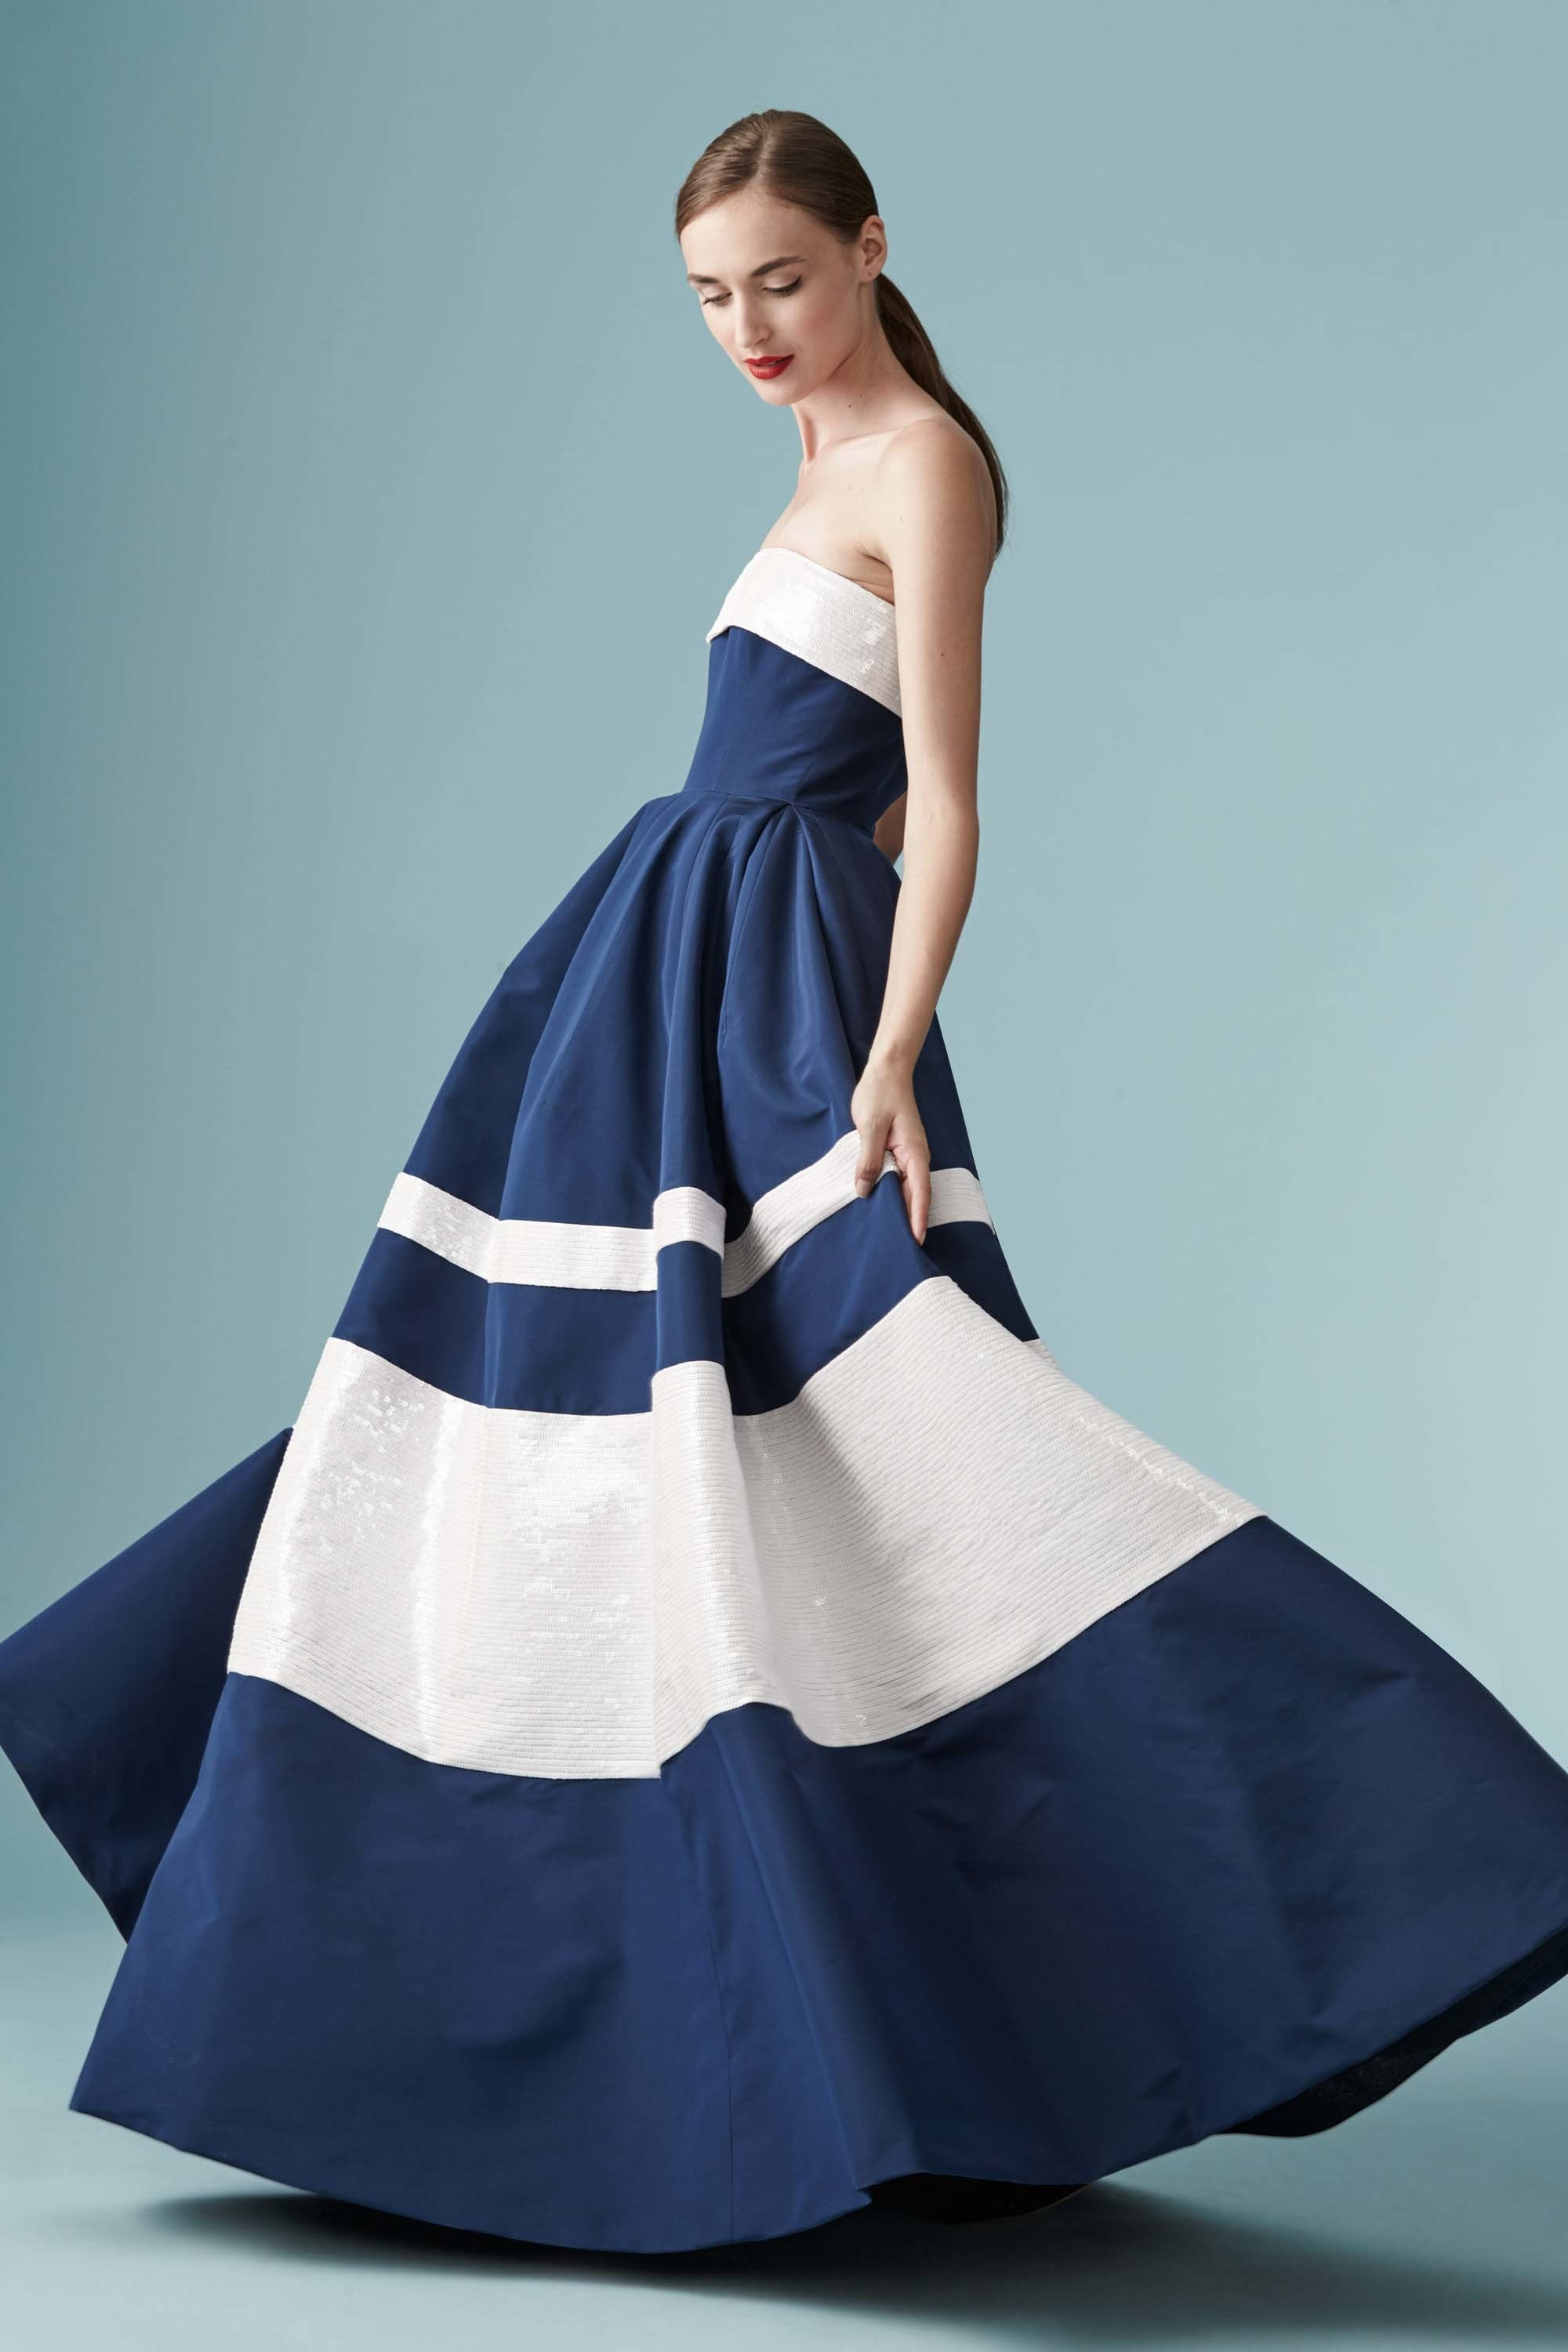 Model wearing Carolina Herrera blue and white striped gown